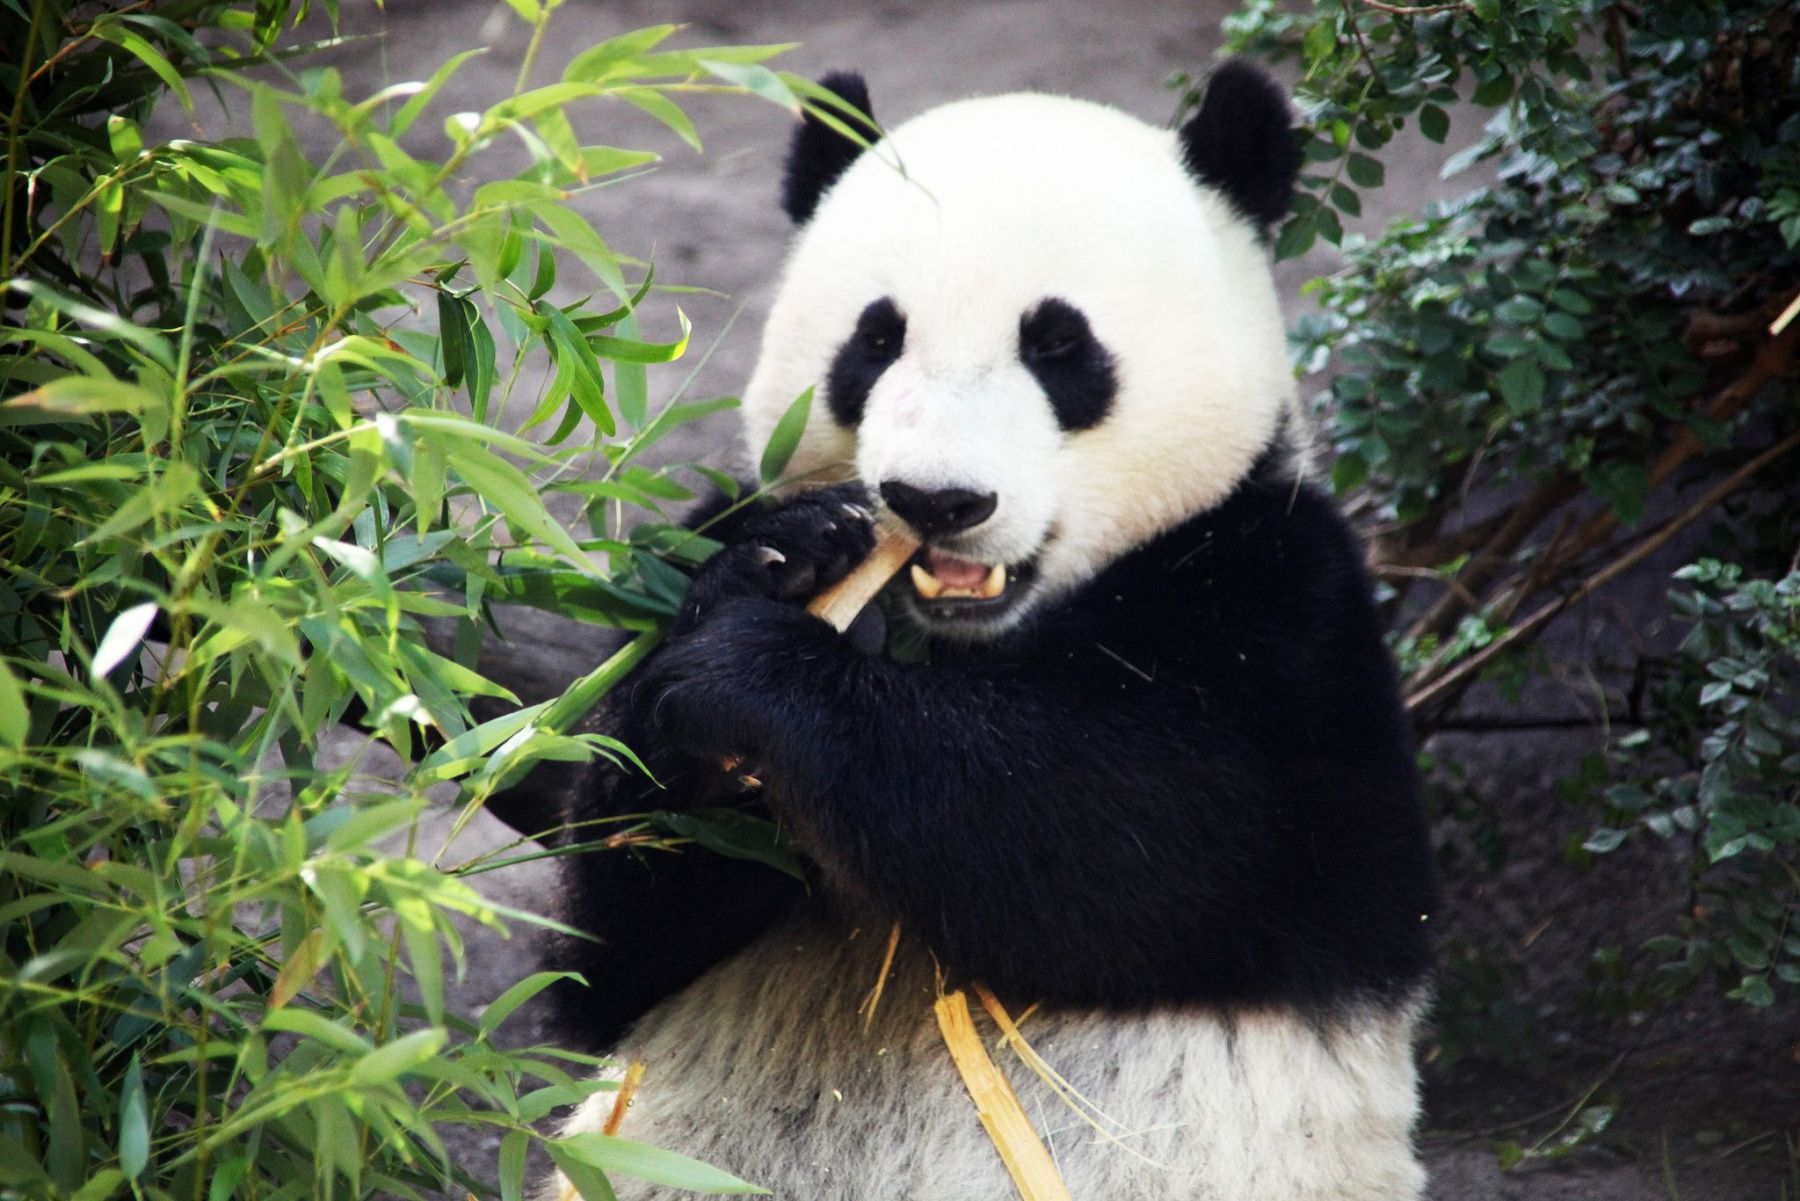 Giant Pandas have carnivorous teeth and a meat eater's digestive system which isn't meant for chewing and digesting tough plants ...